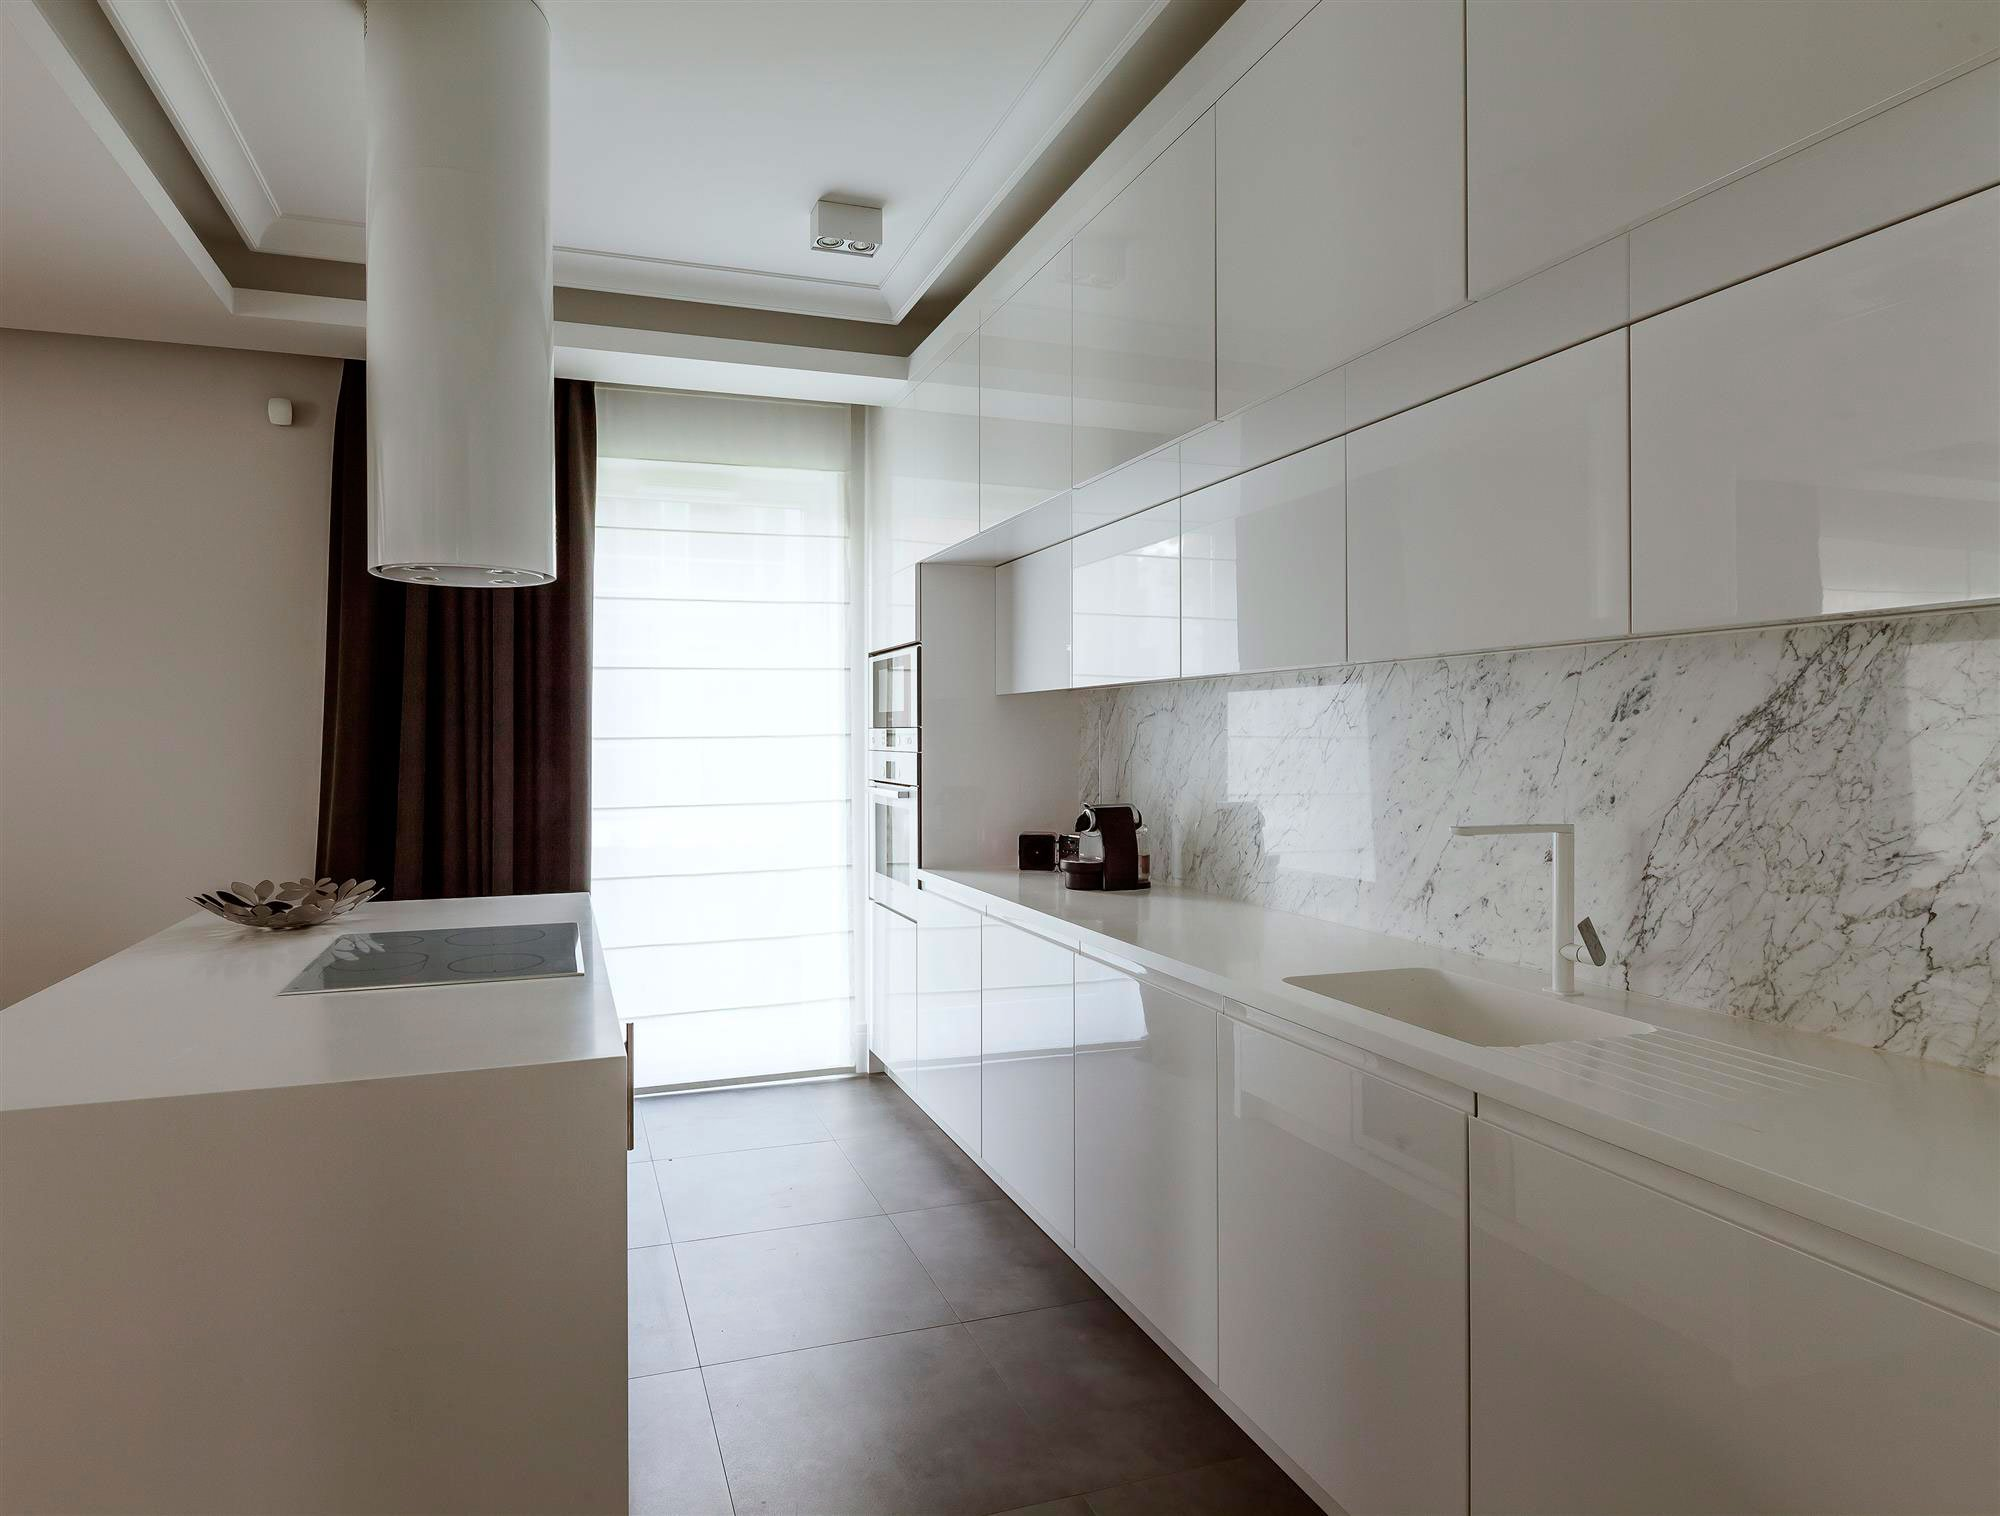 Apartment-in-Warsaw-07